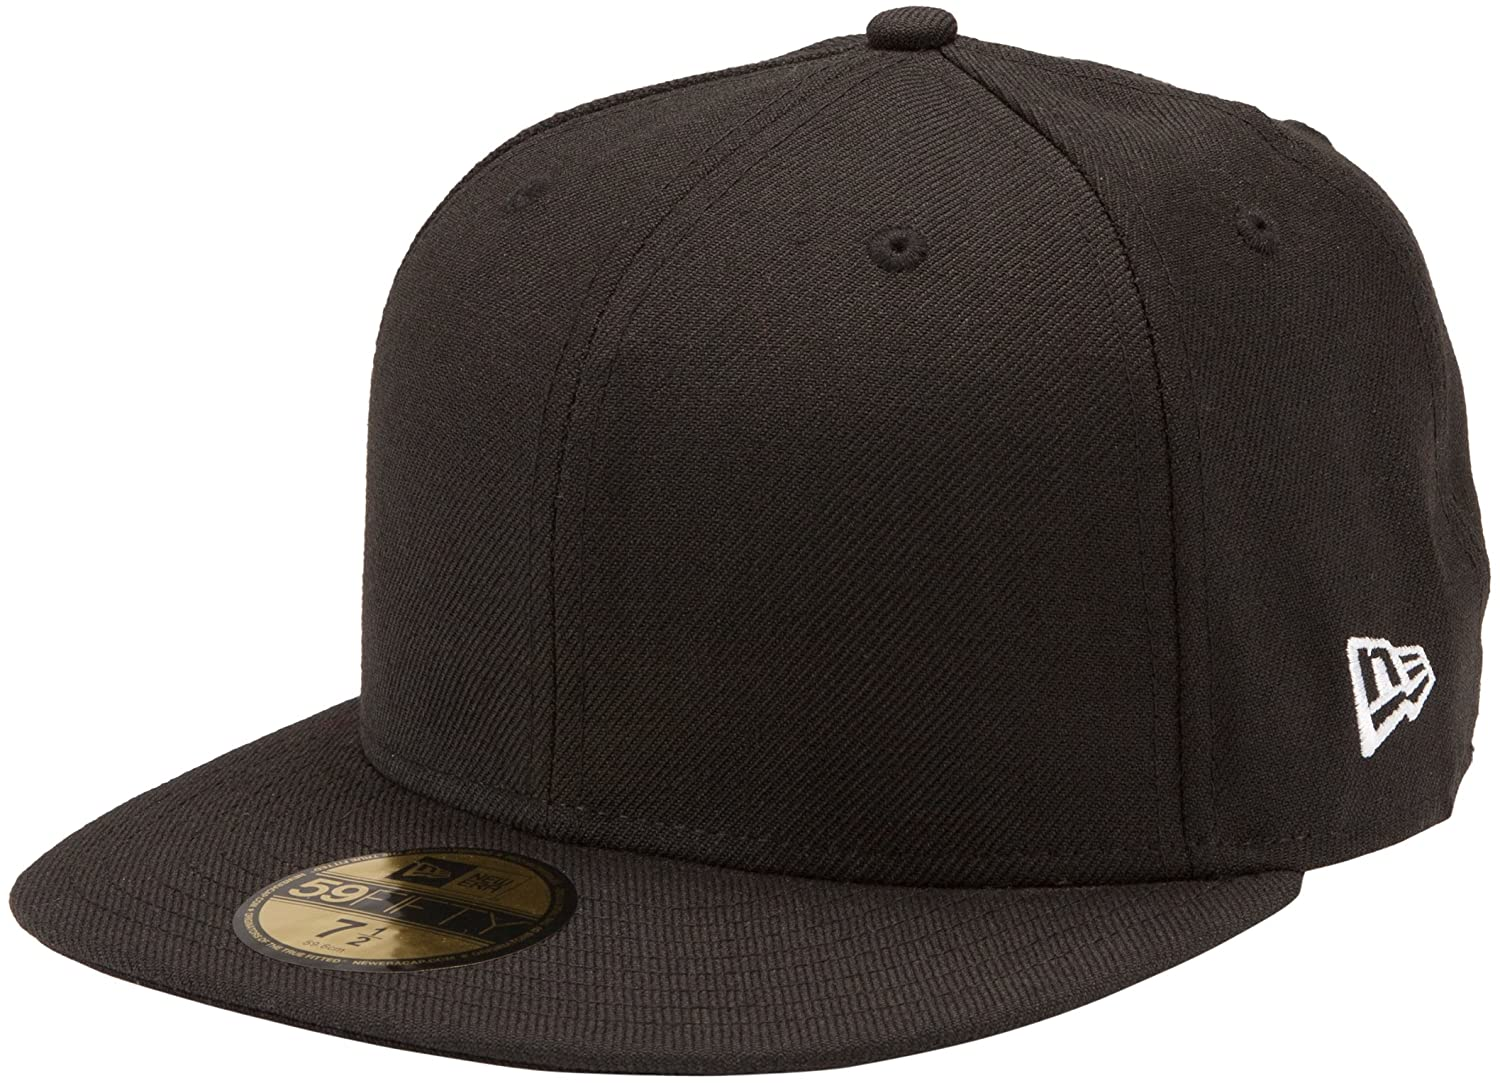 Amazon.com   New Era Original Basic Black 59Fifty Hat   Sports Fan Baseball  Caps   Clothing fdc02a976